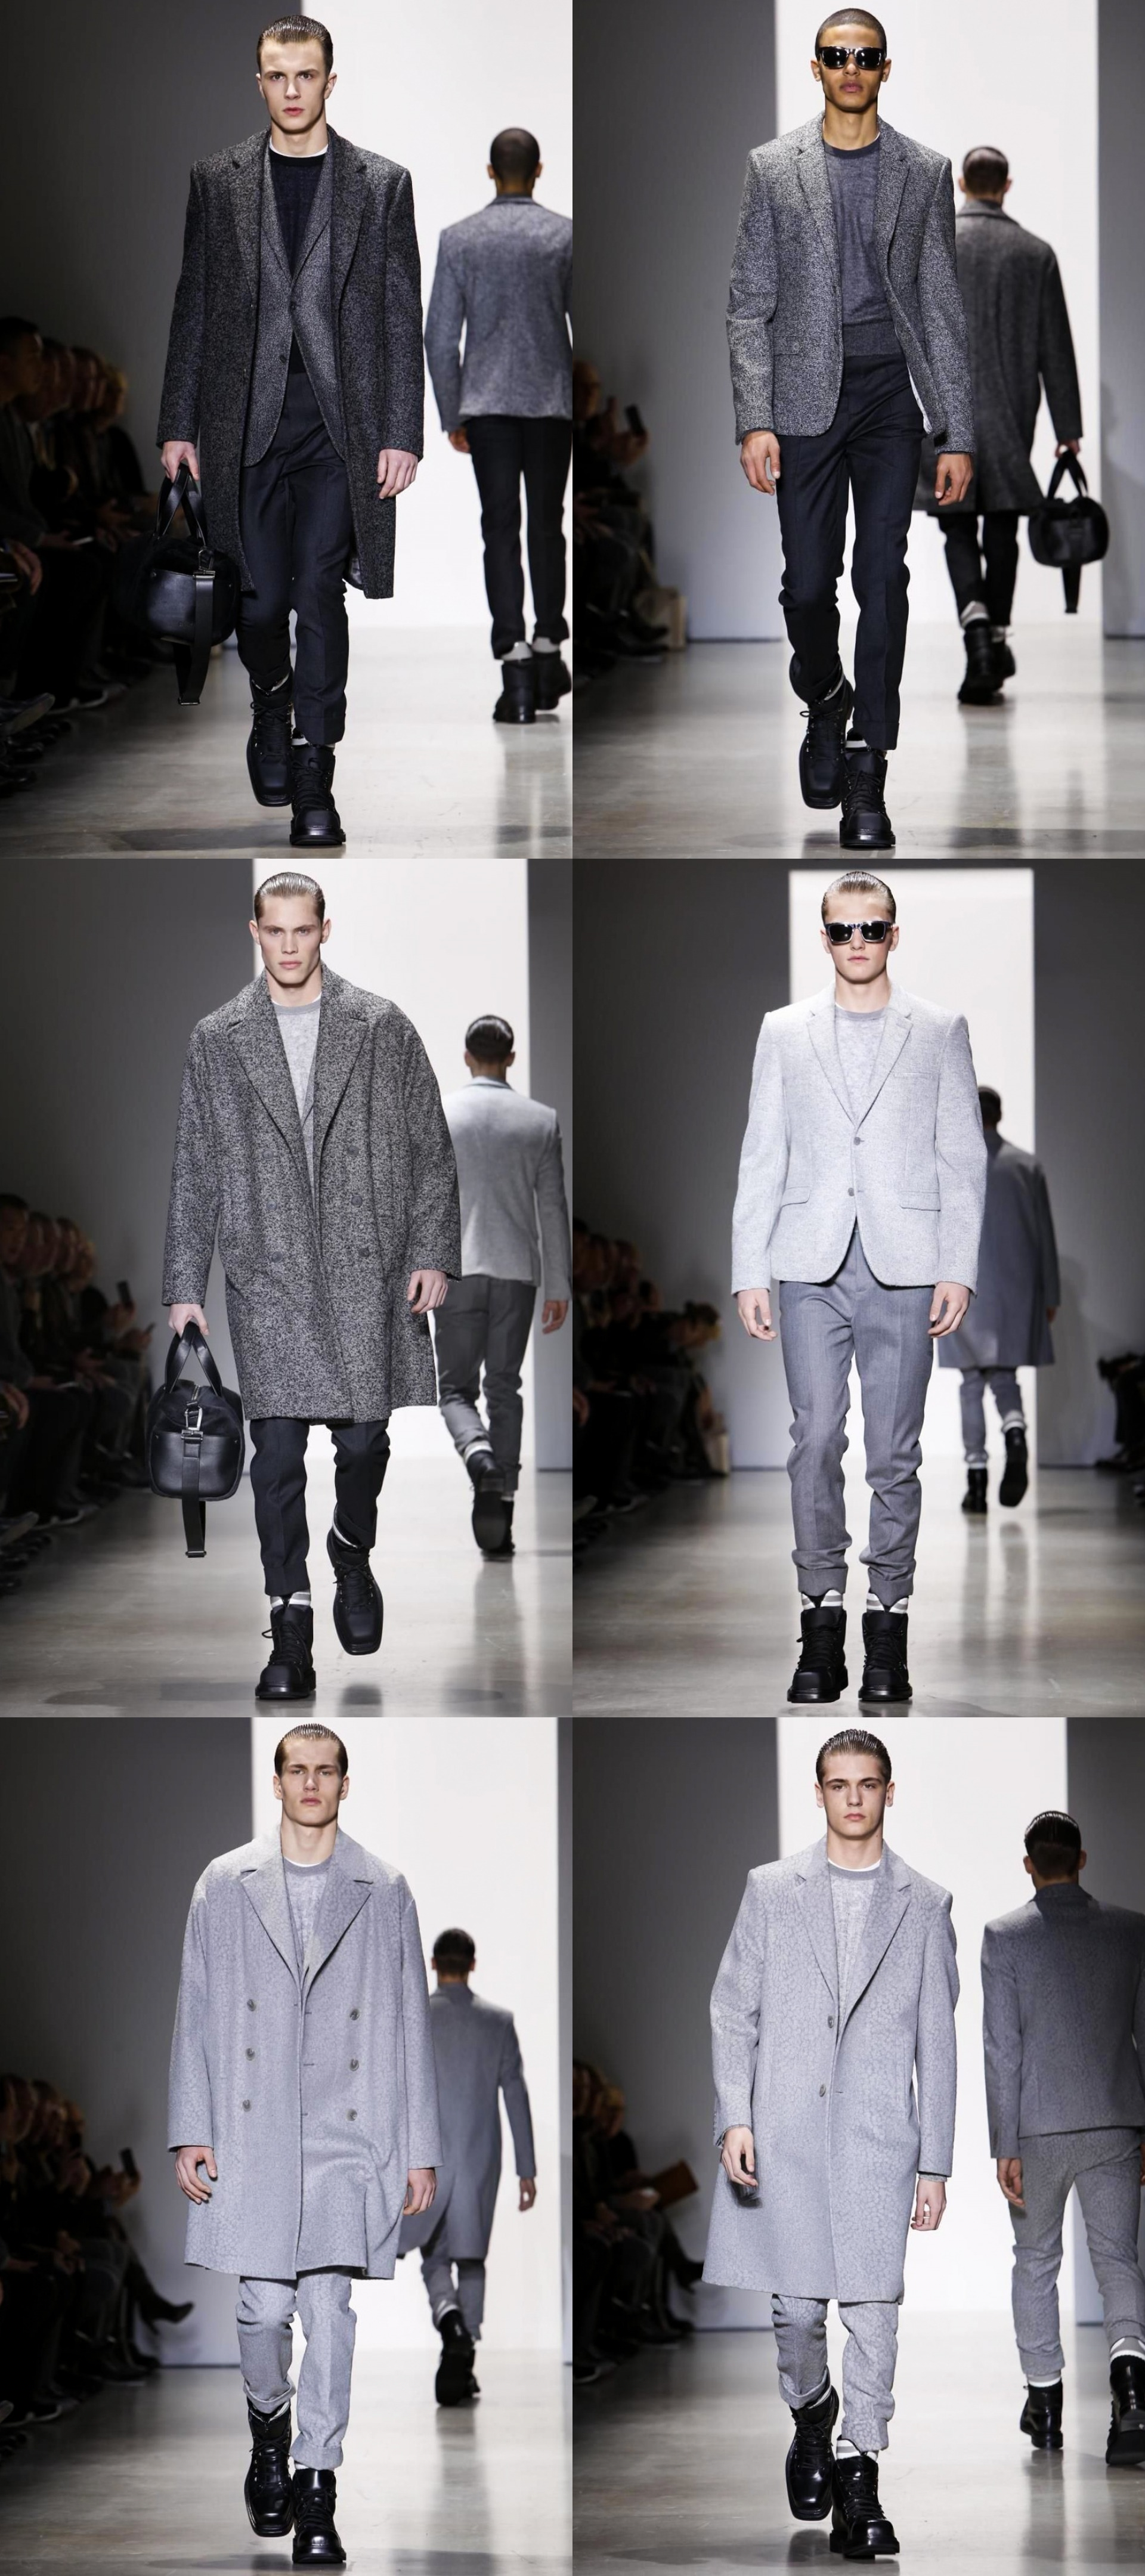 CALVIN KLEIN, fw15, fall winter 2015, milan fashion week, desfile 2015, moda masculina, tendencia masculina, menswear, fashion blogger, blogger, style, blogger, fashion blogger, moda sem censura, alex cursino, 6